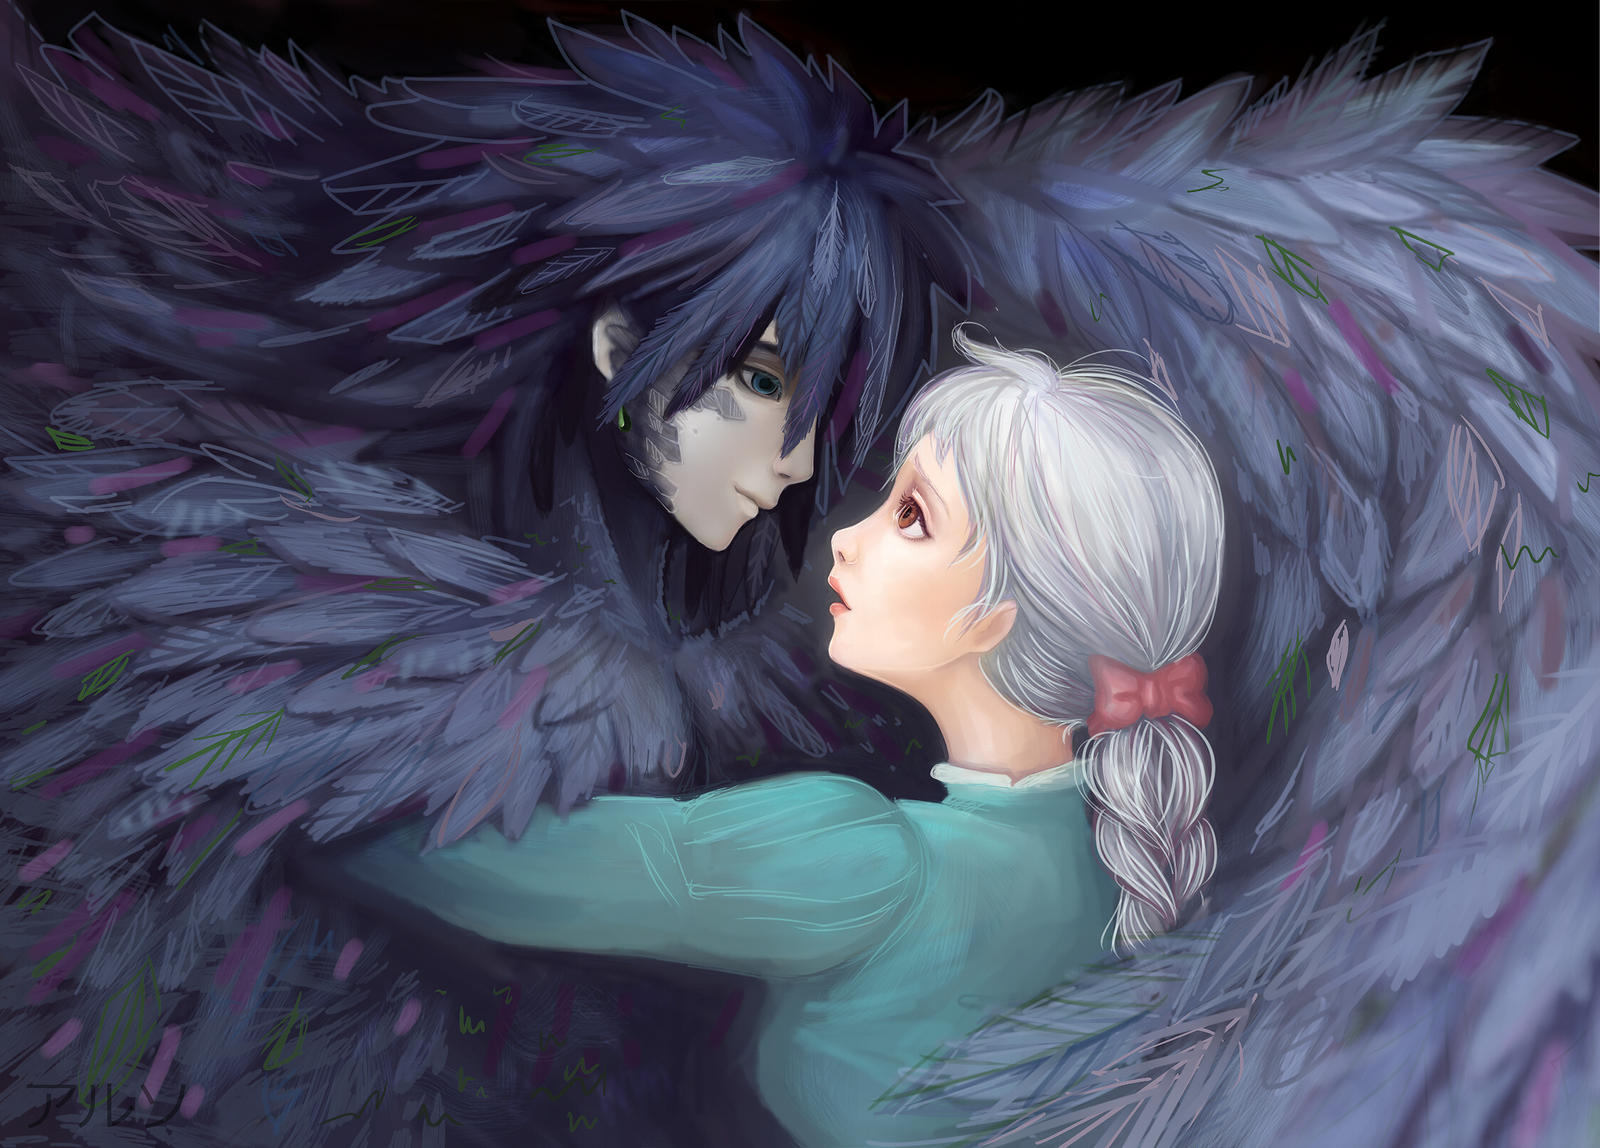 Howl and Sophie by SaoriAiko on DeviantArt